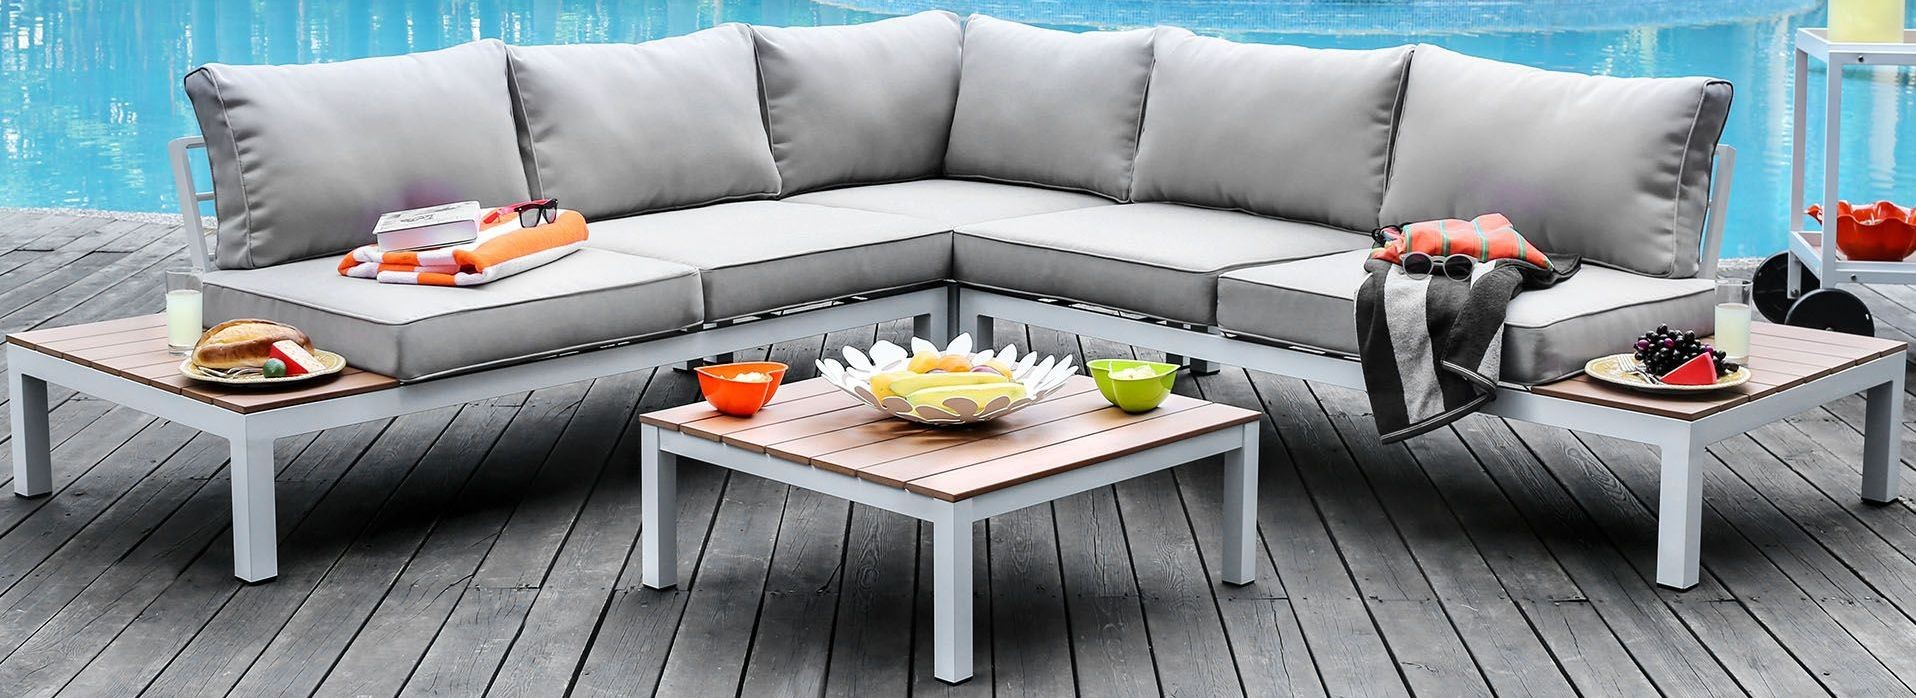 Winona Gray Patio Sectional With Ottoman From Furniture Of